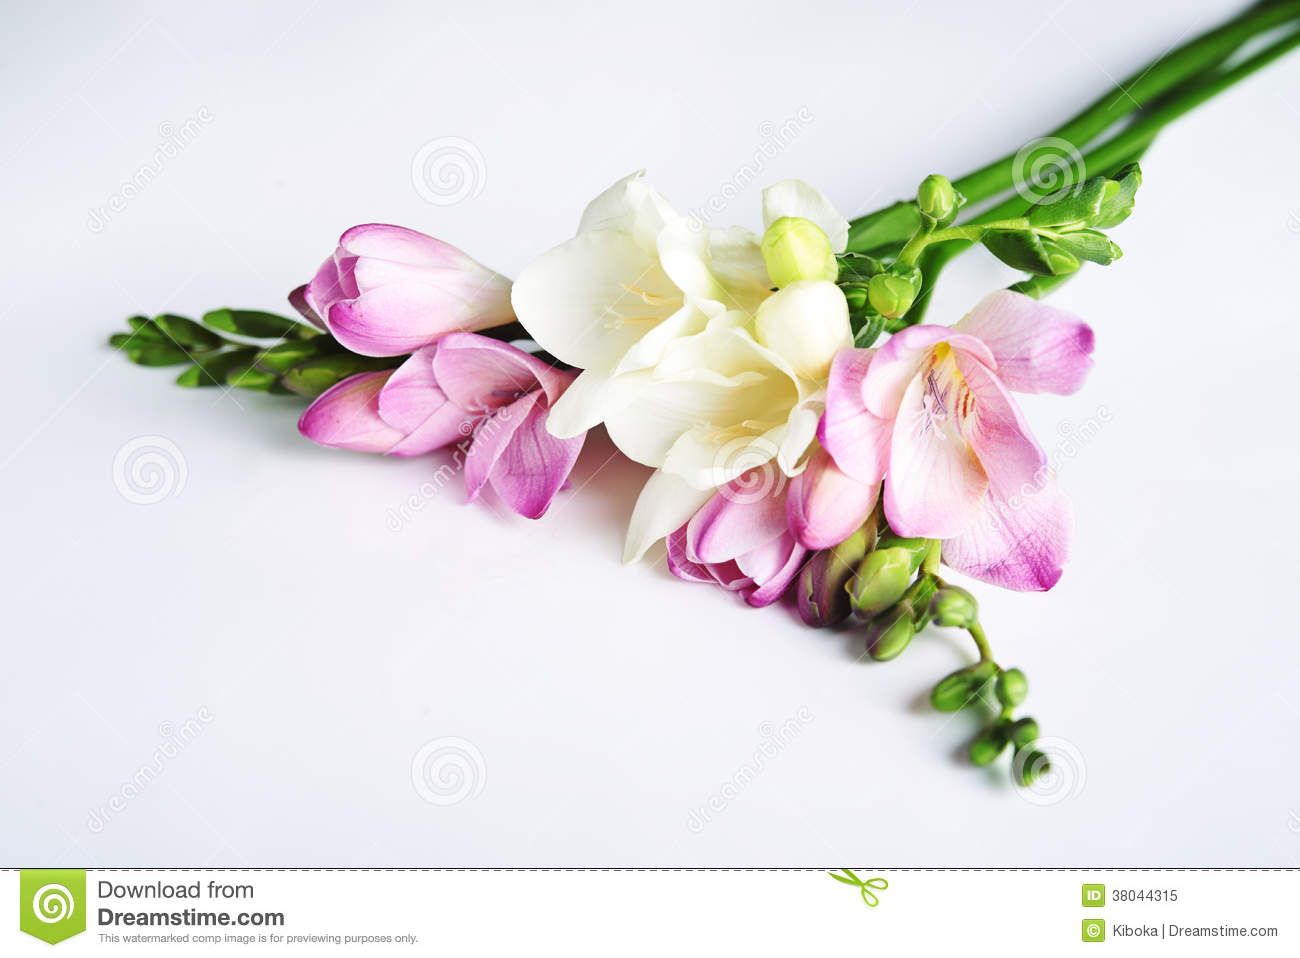 Freesia flowers stock image image of petal pastel flora 38044315 freesia flowers izmirmasajfo